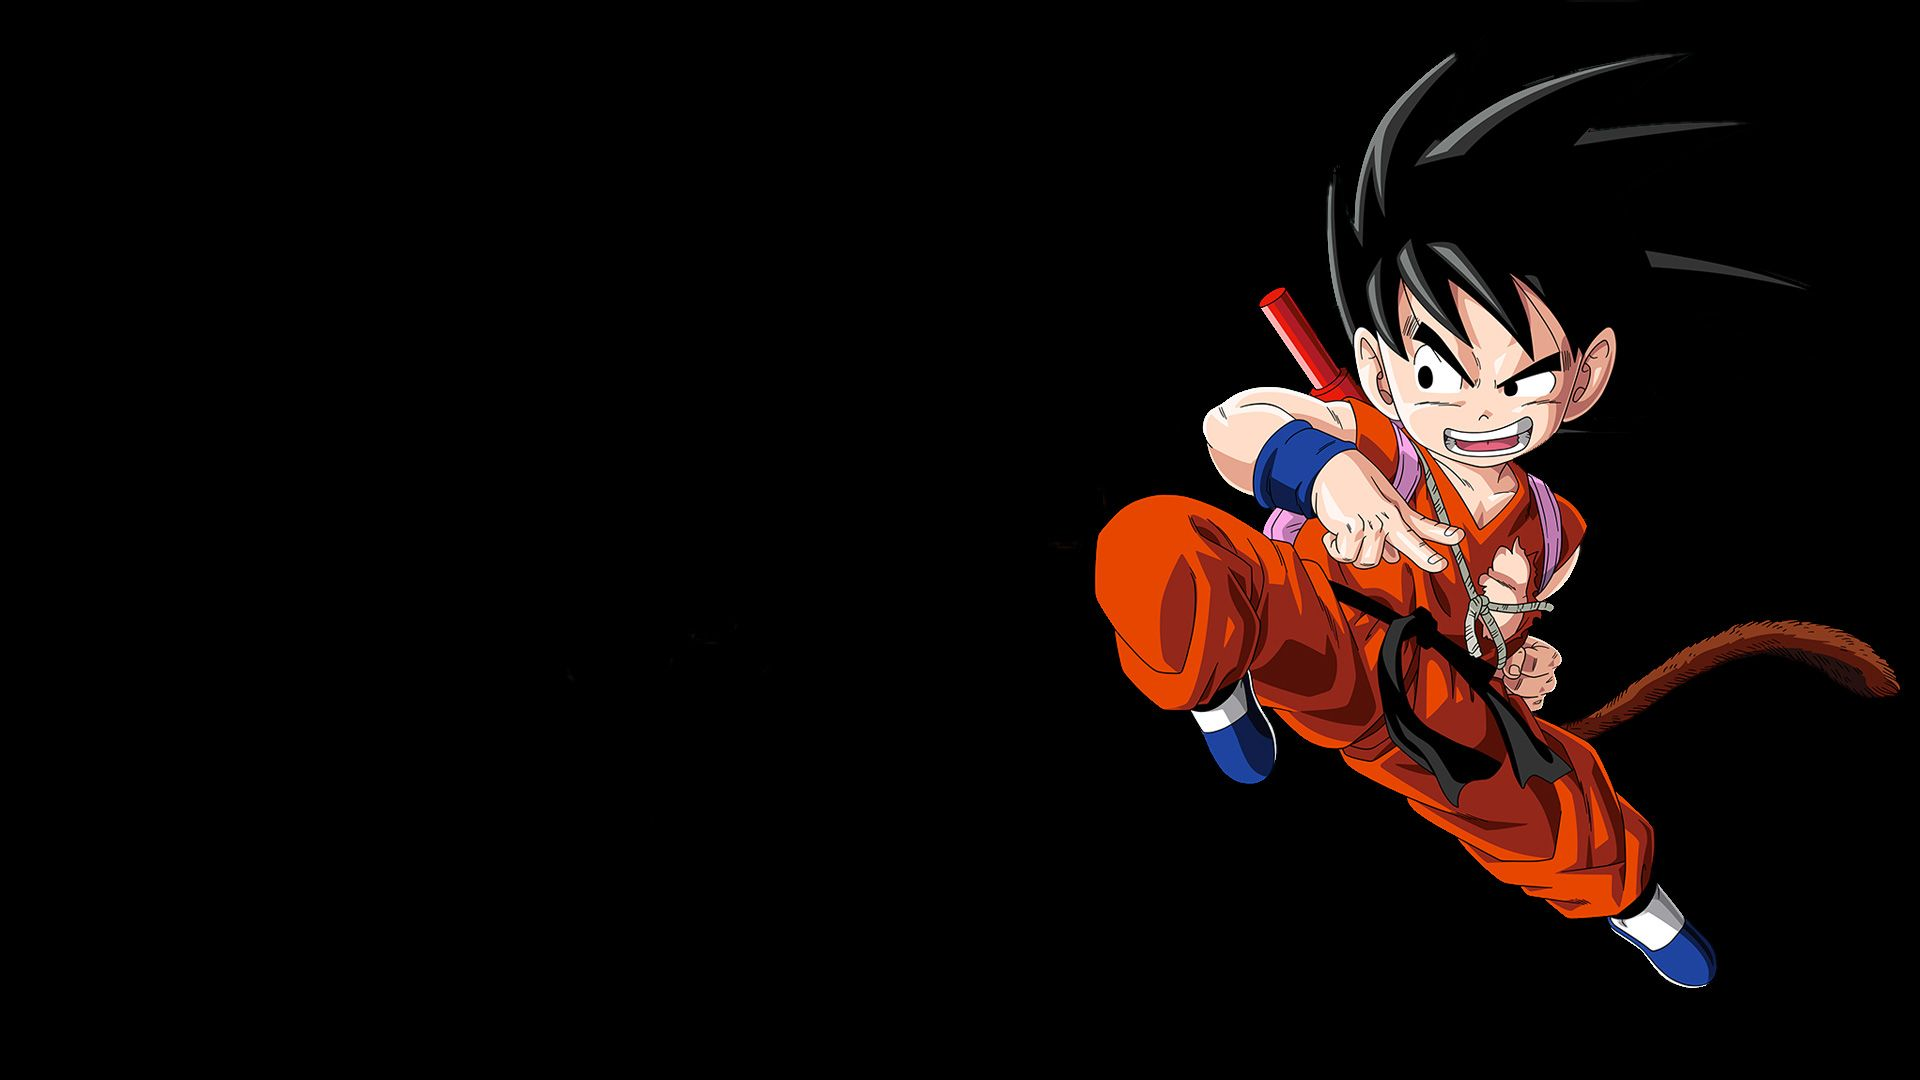 40 Best Goku Wallpaper Hd For Pc Dragon Ball Z Dragones